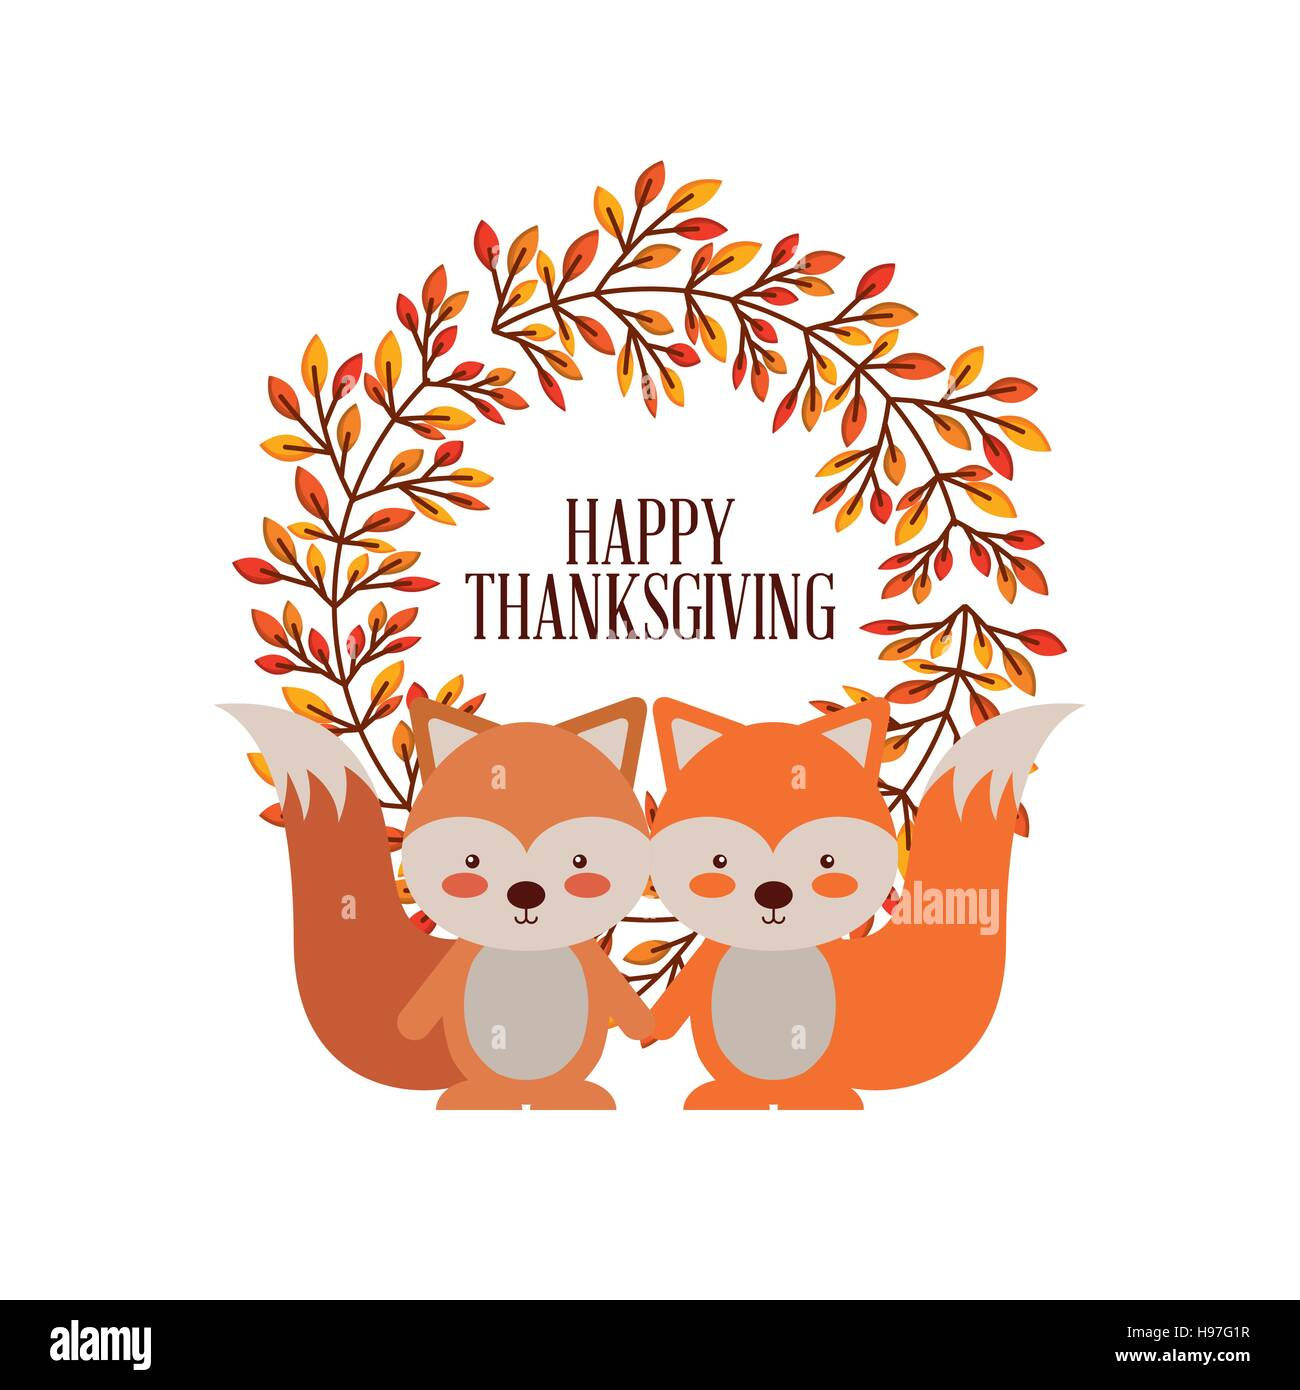 Happy thanksgiving card with decorative wreath and couple of cute happy thanksgiving card with decorative wreath and couple of cute foxes over white background colorful design vector illustration m4hsunfo